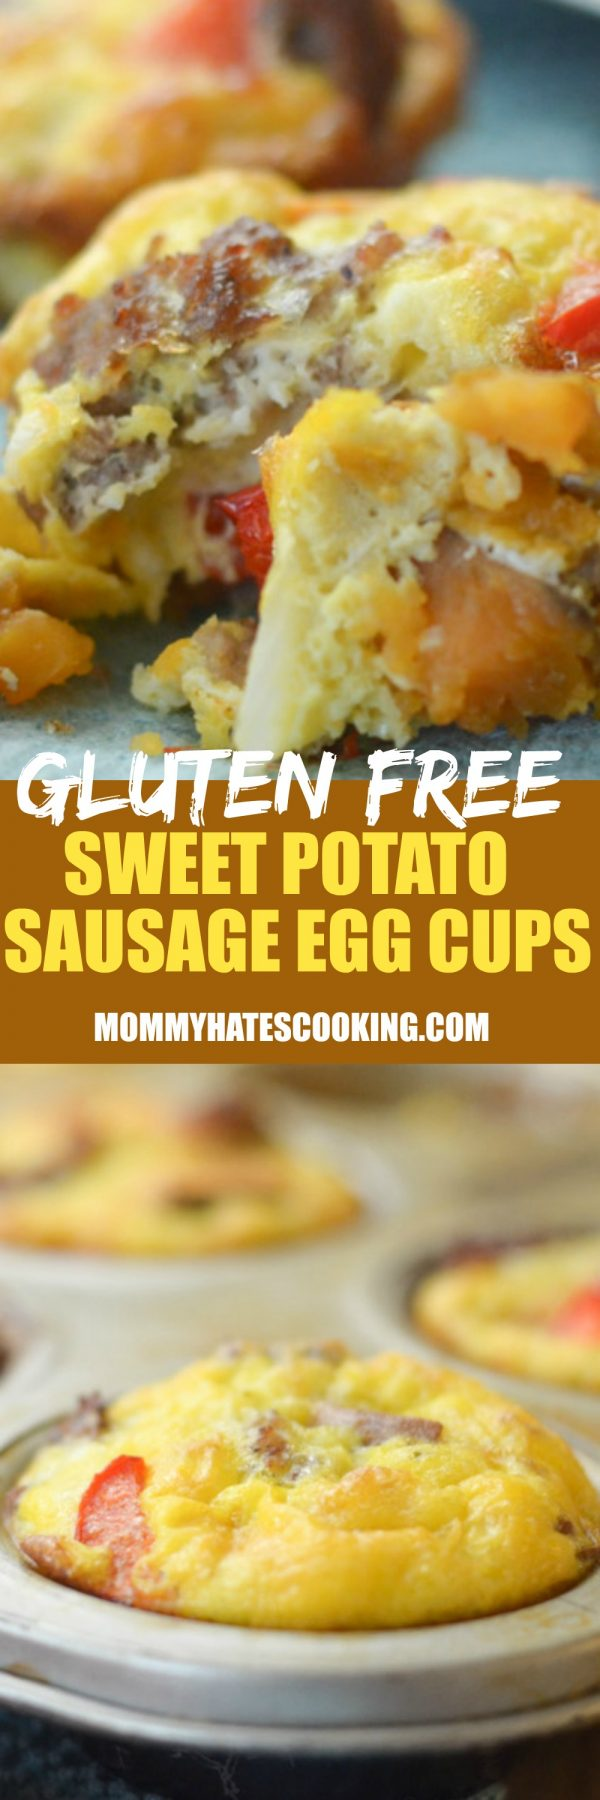 Gluten Free Sweet Potato & Sausage Egg Cups - Mommy Hates Cooking